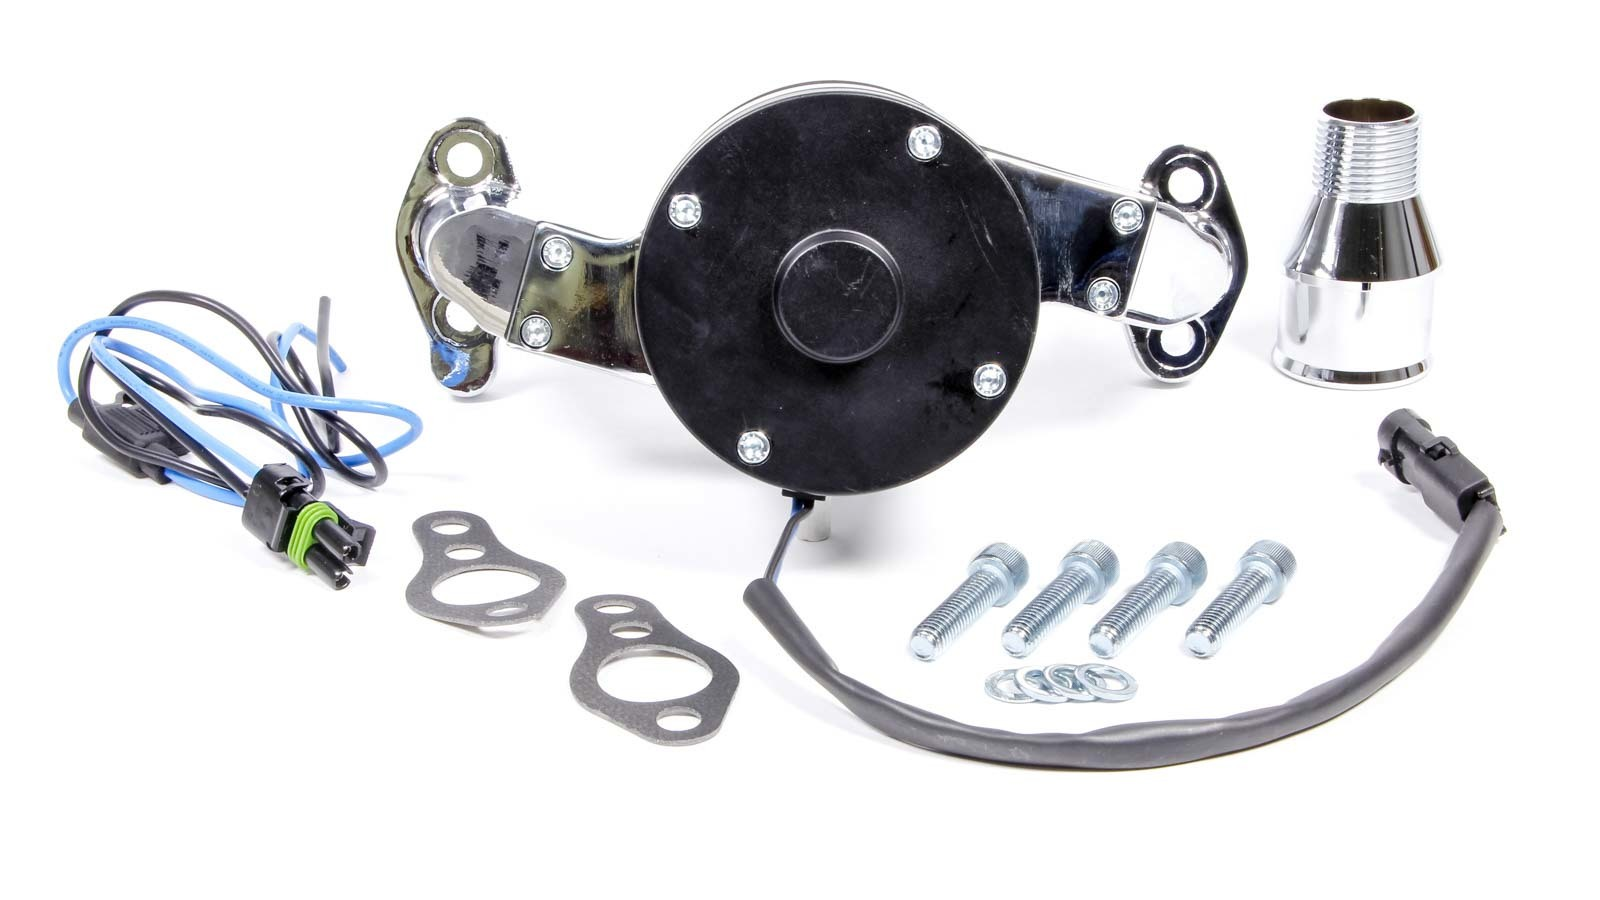 Proform 66225C Water Pump, Electric, 1 in NPT Female Inlet, Adapter / Gaskets / Hardware, Billet Aluminum, Chrome, Small Block Chevy, Kit